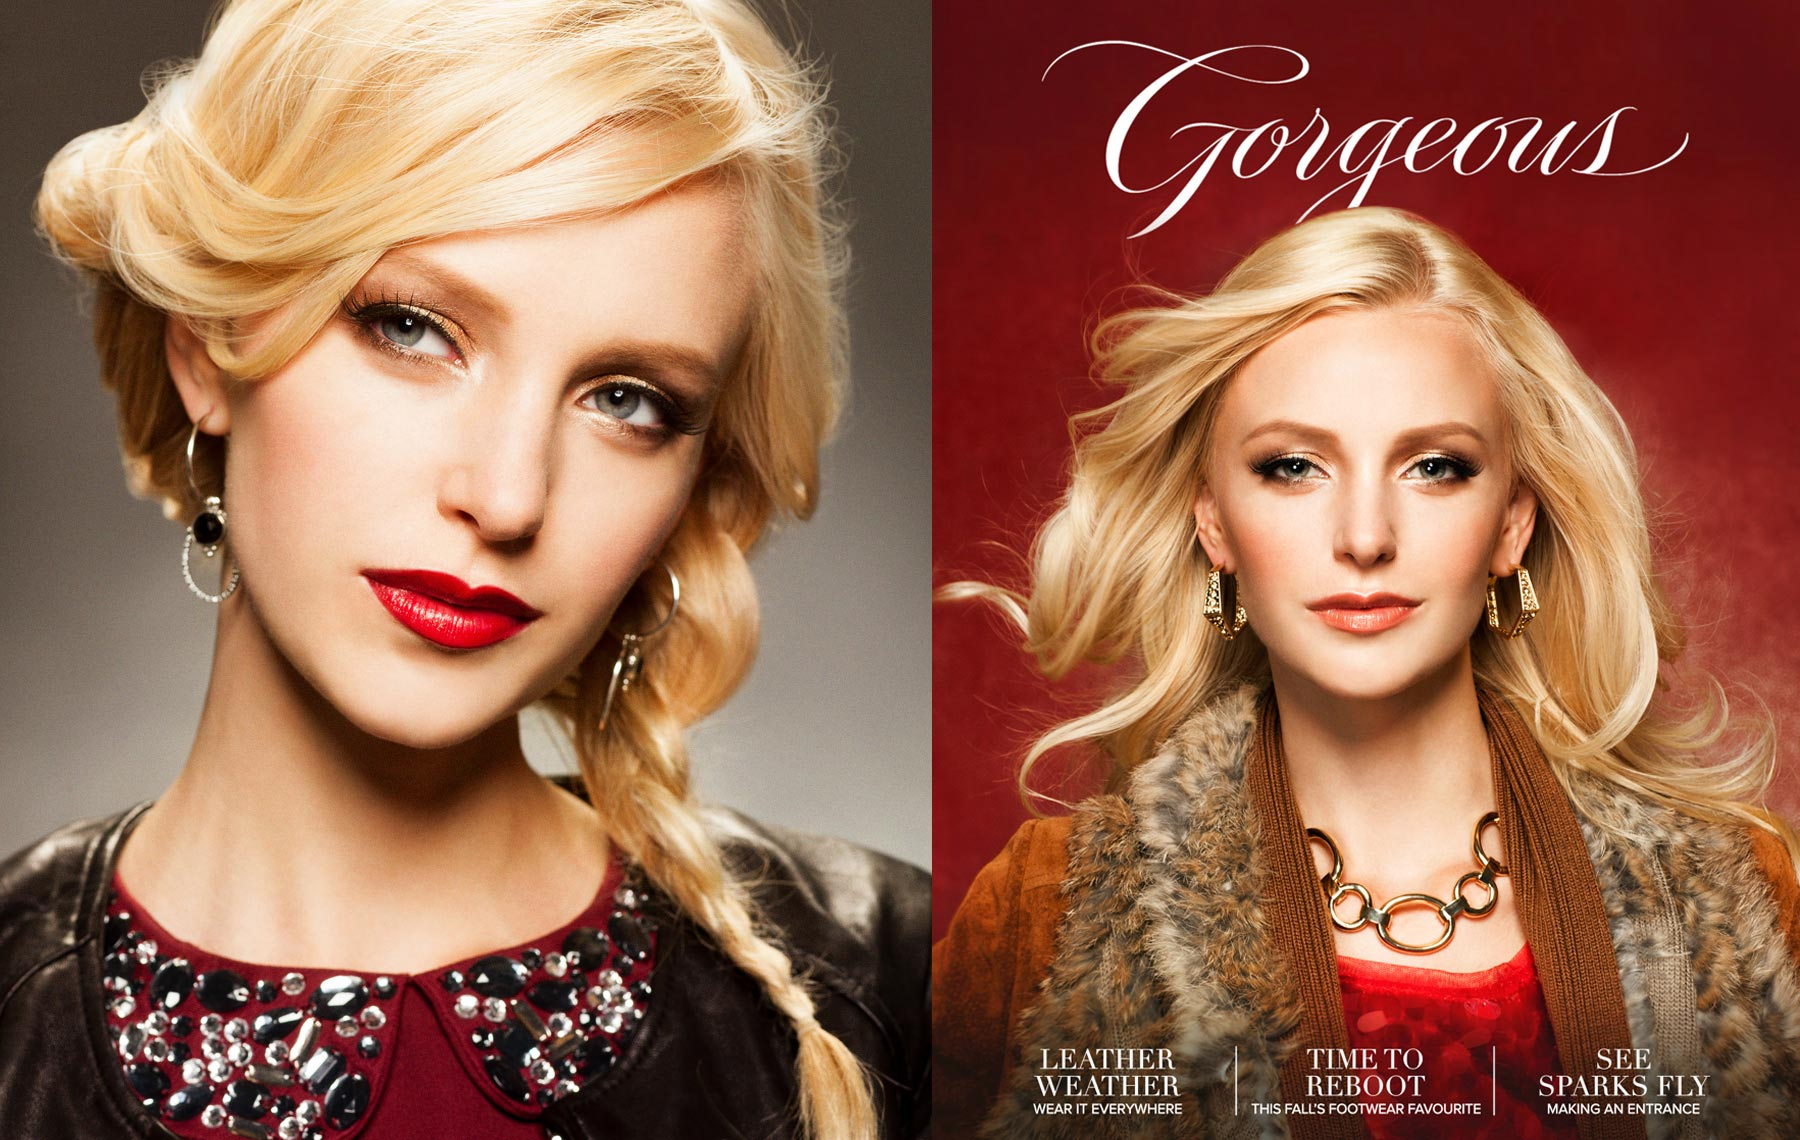 David-Fierro-Gorgeous-Cover_Fashion_Photography_Advertising_Beauty